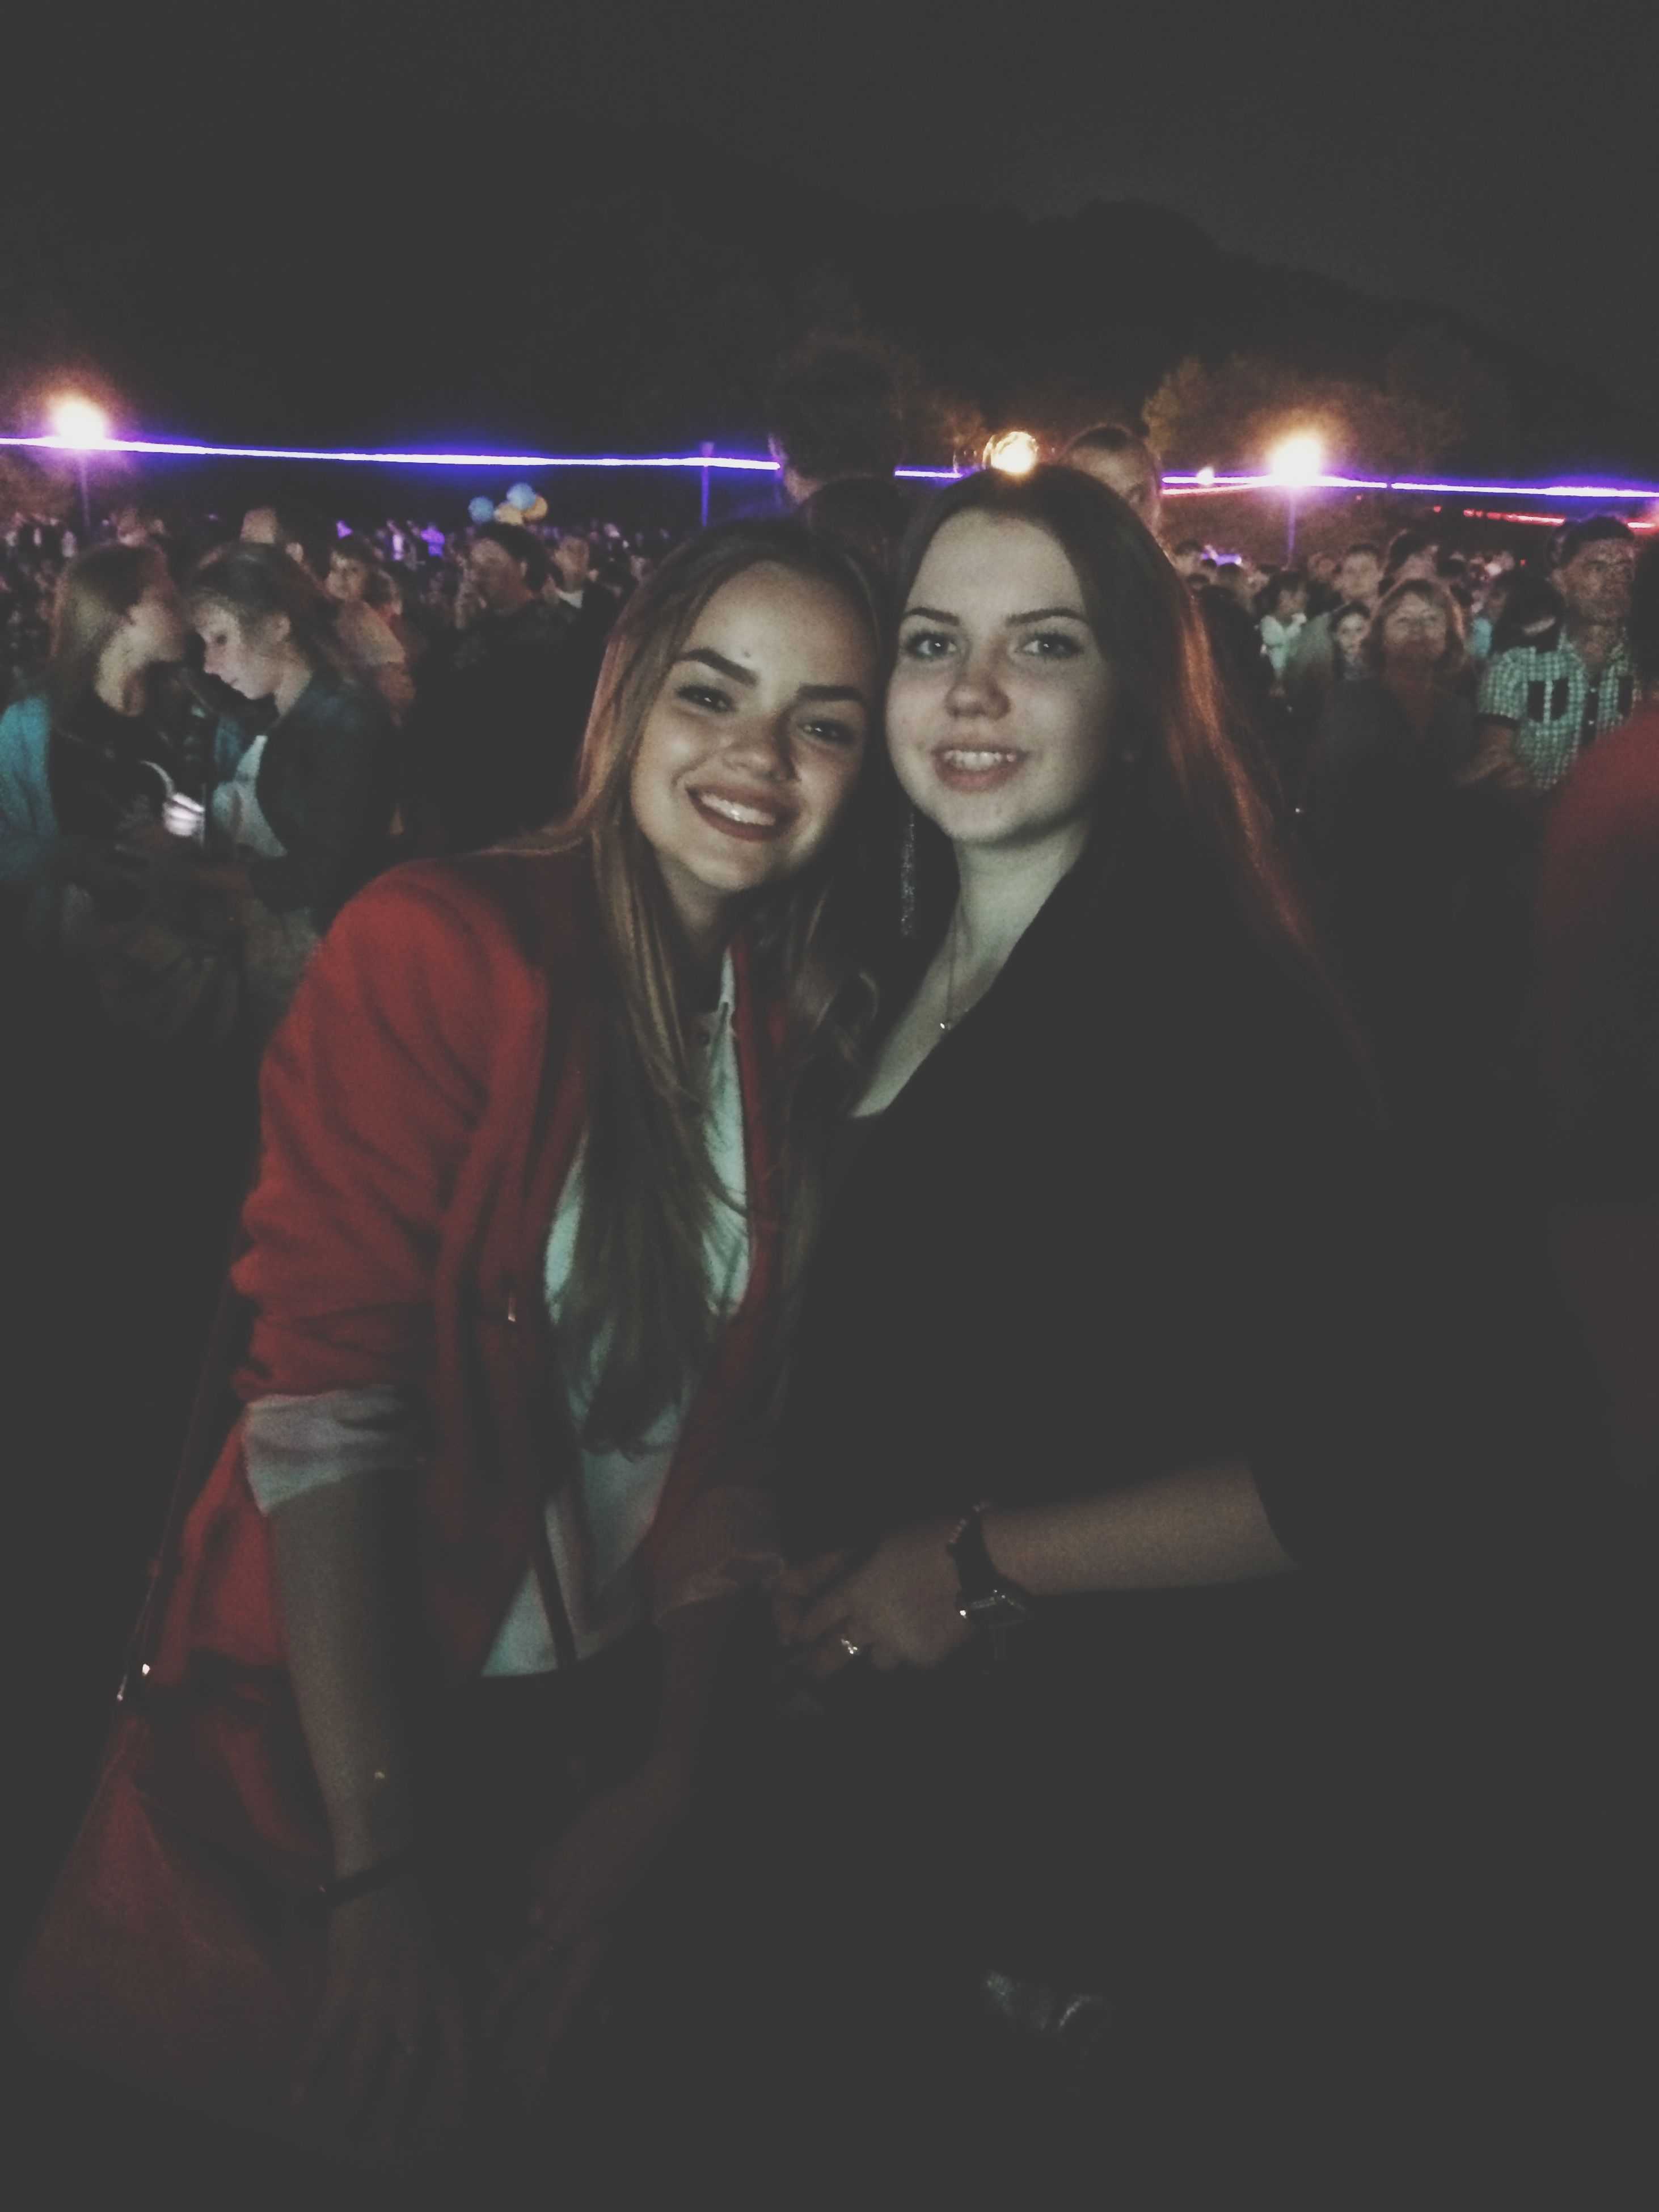 night, illuminated, lifestyles, leisure activity, young adult, portrait, standing, celebration, front view, happiness, casual clothing, looking at camera, togetherness, enjoyment, person, young women, fun, smiling